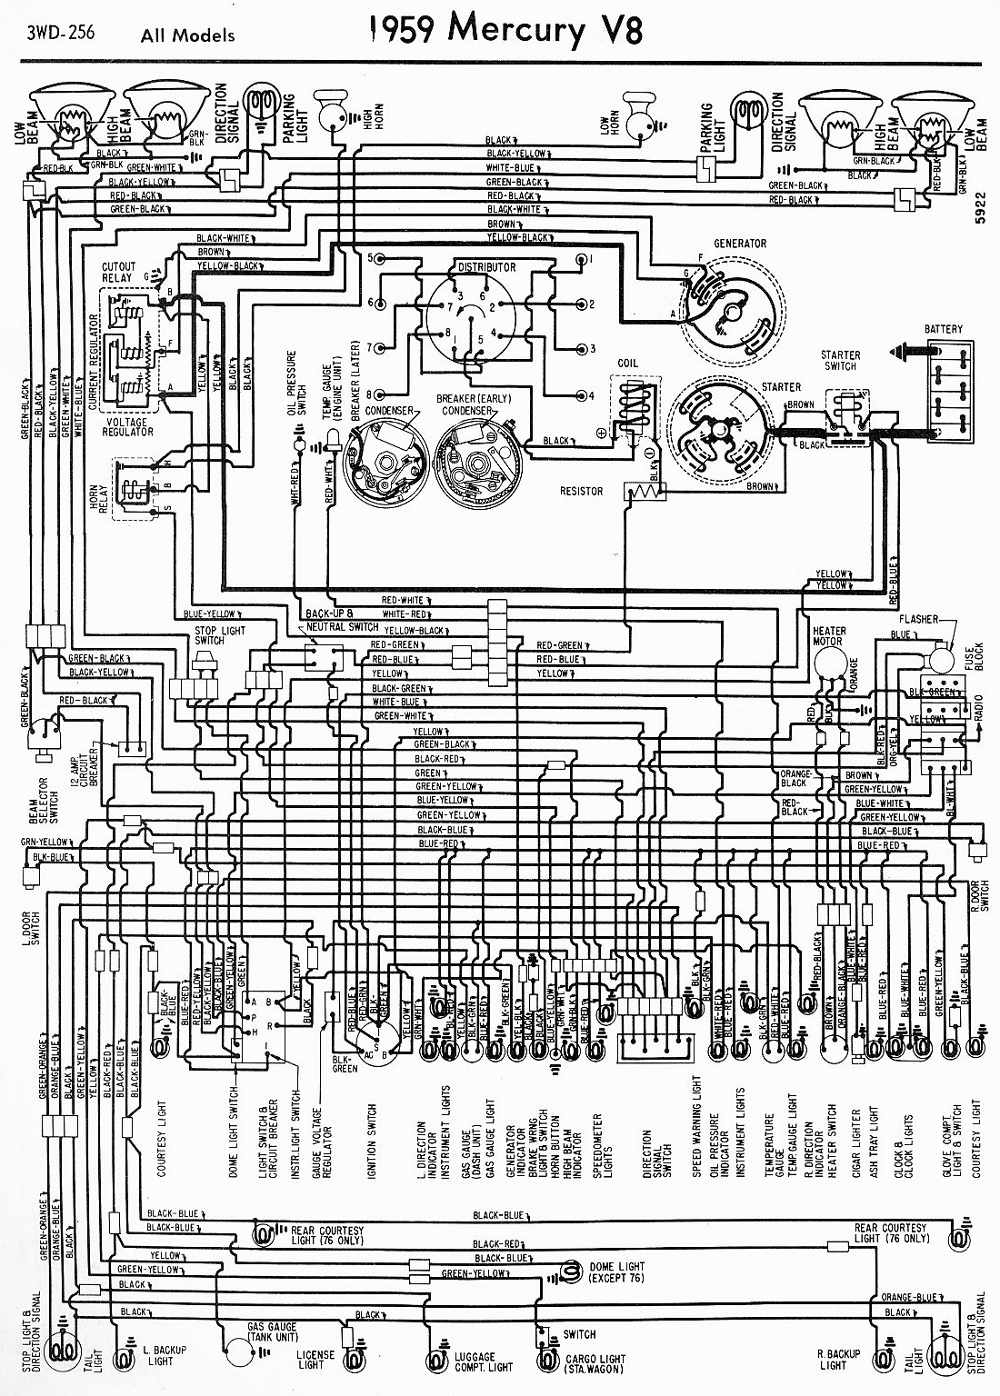 small resolution of circuit wiring solution 1959 mercury v8 all models wiring diagram 1959 mercury v8 all models wiring